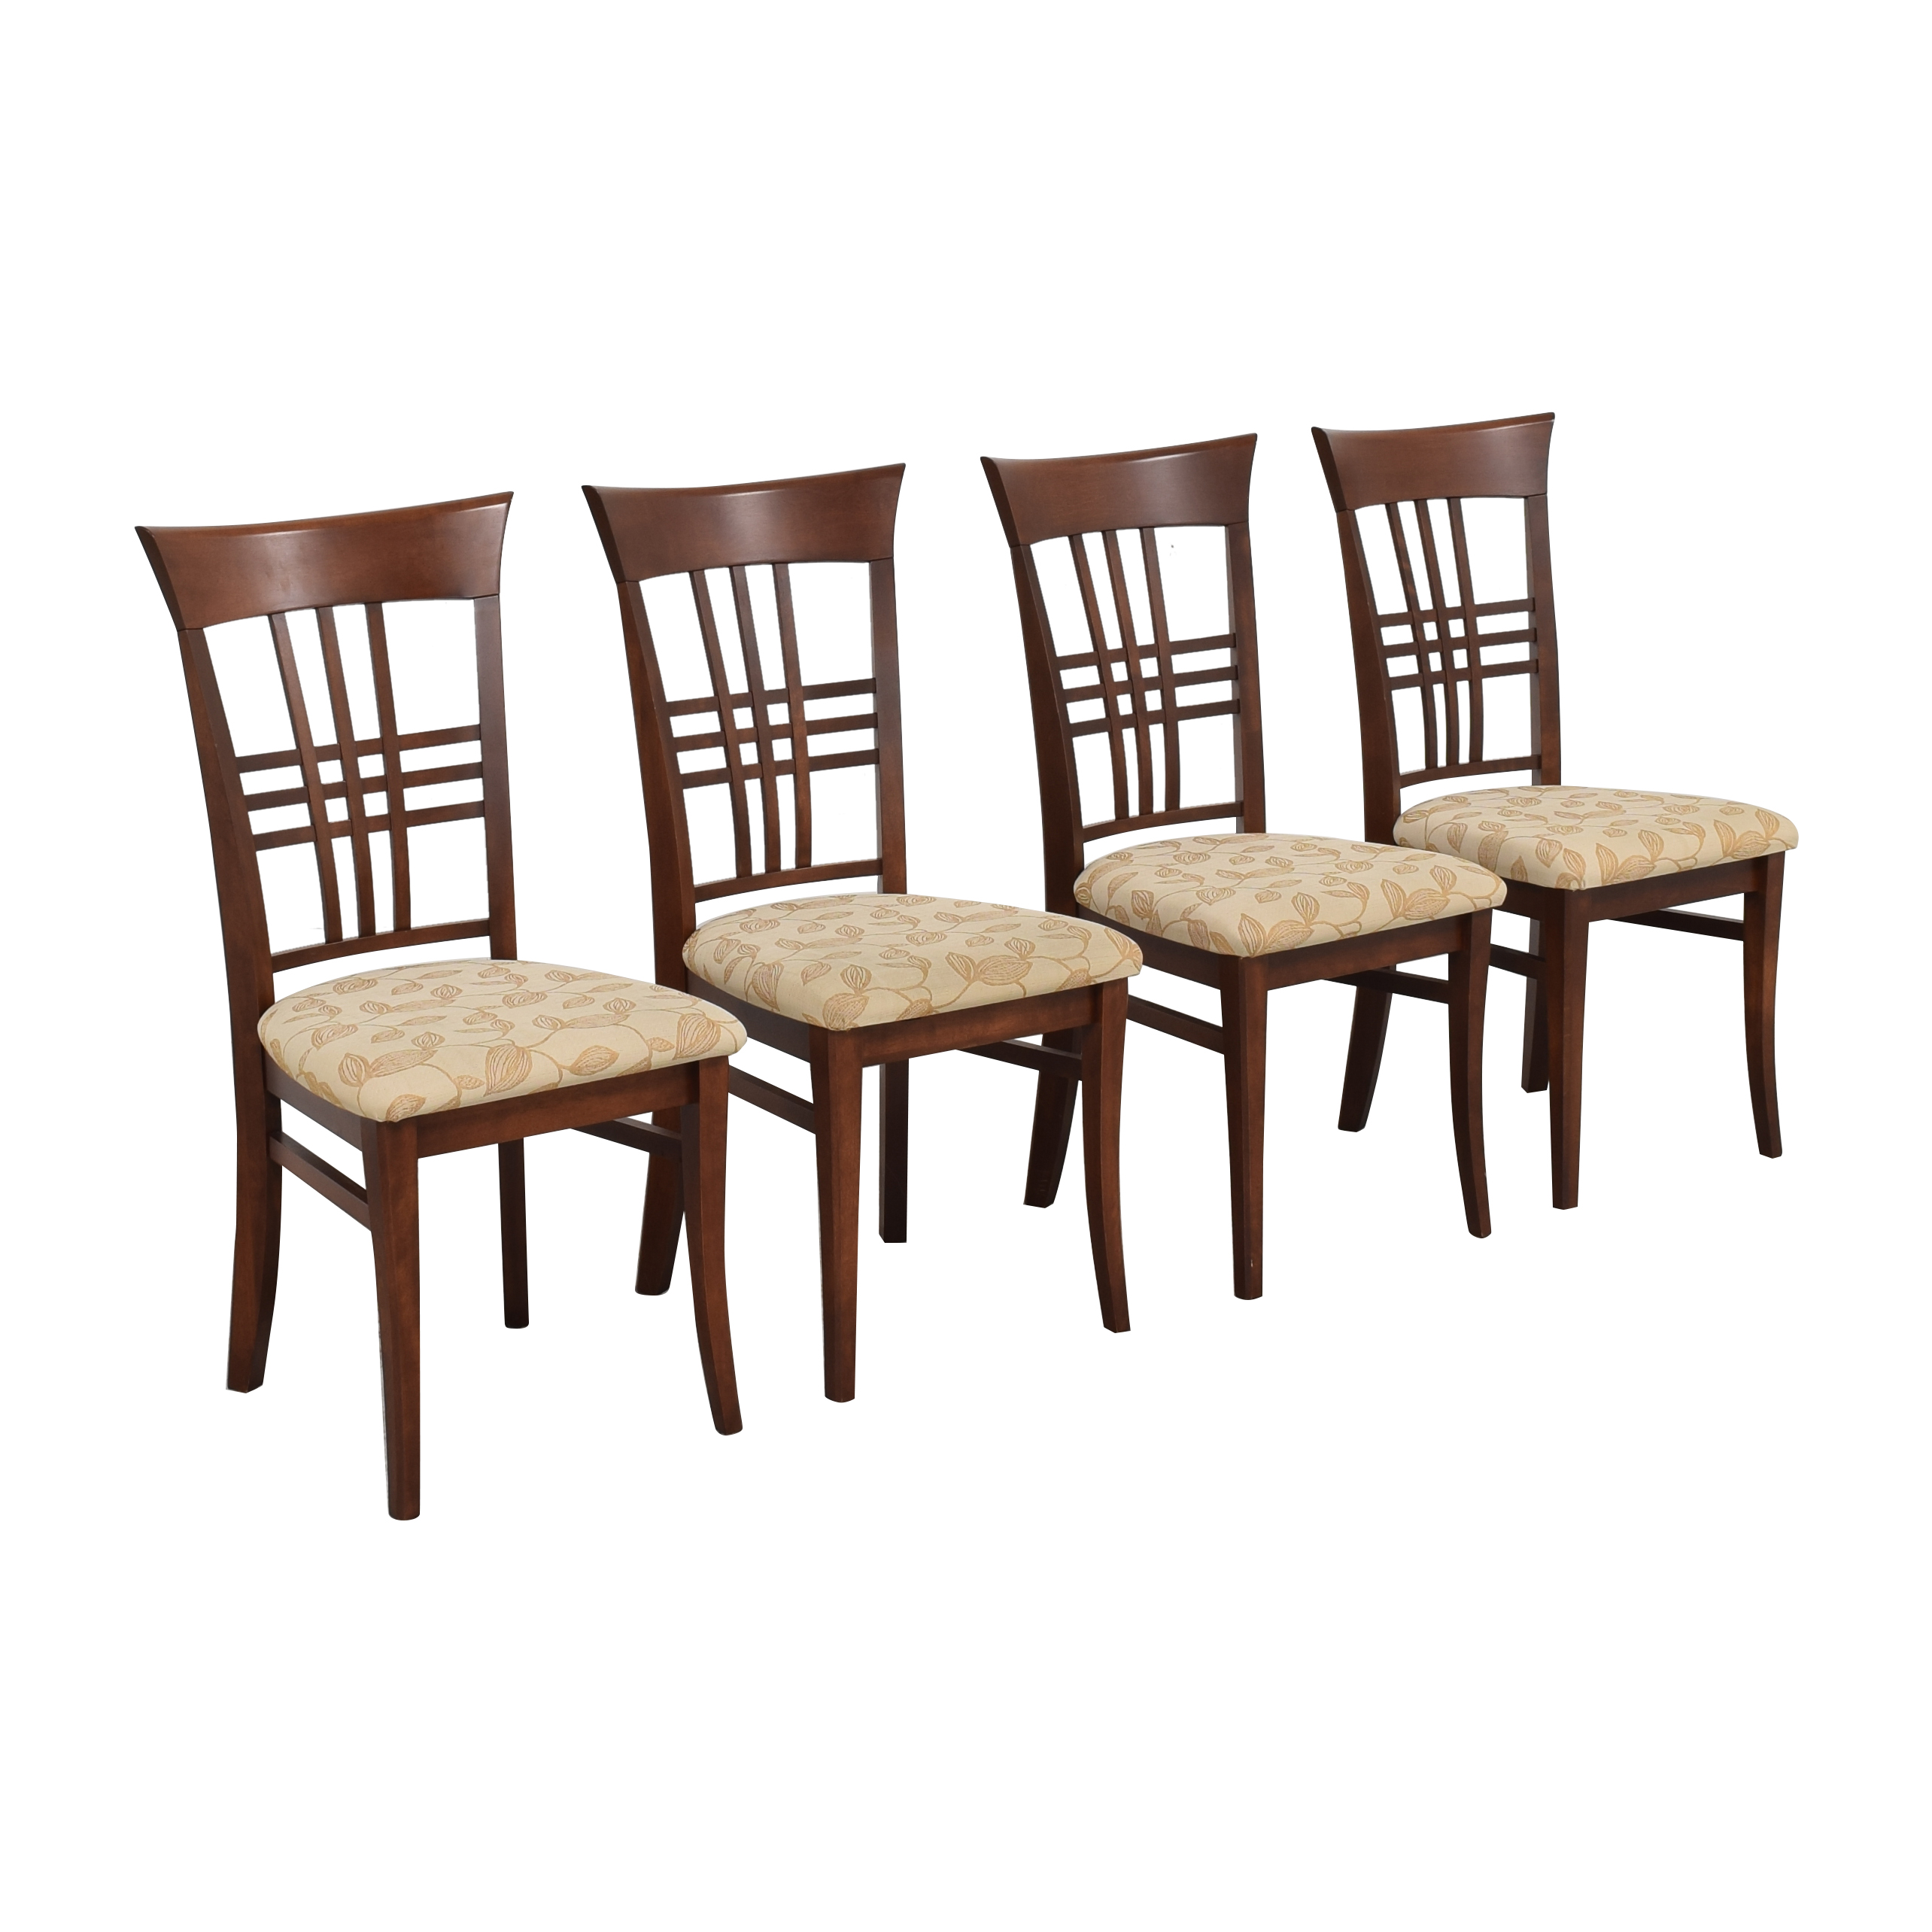 shop Thomasville Thomasville Dining Side Chairs online